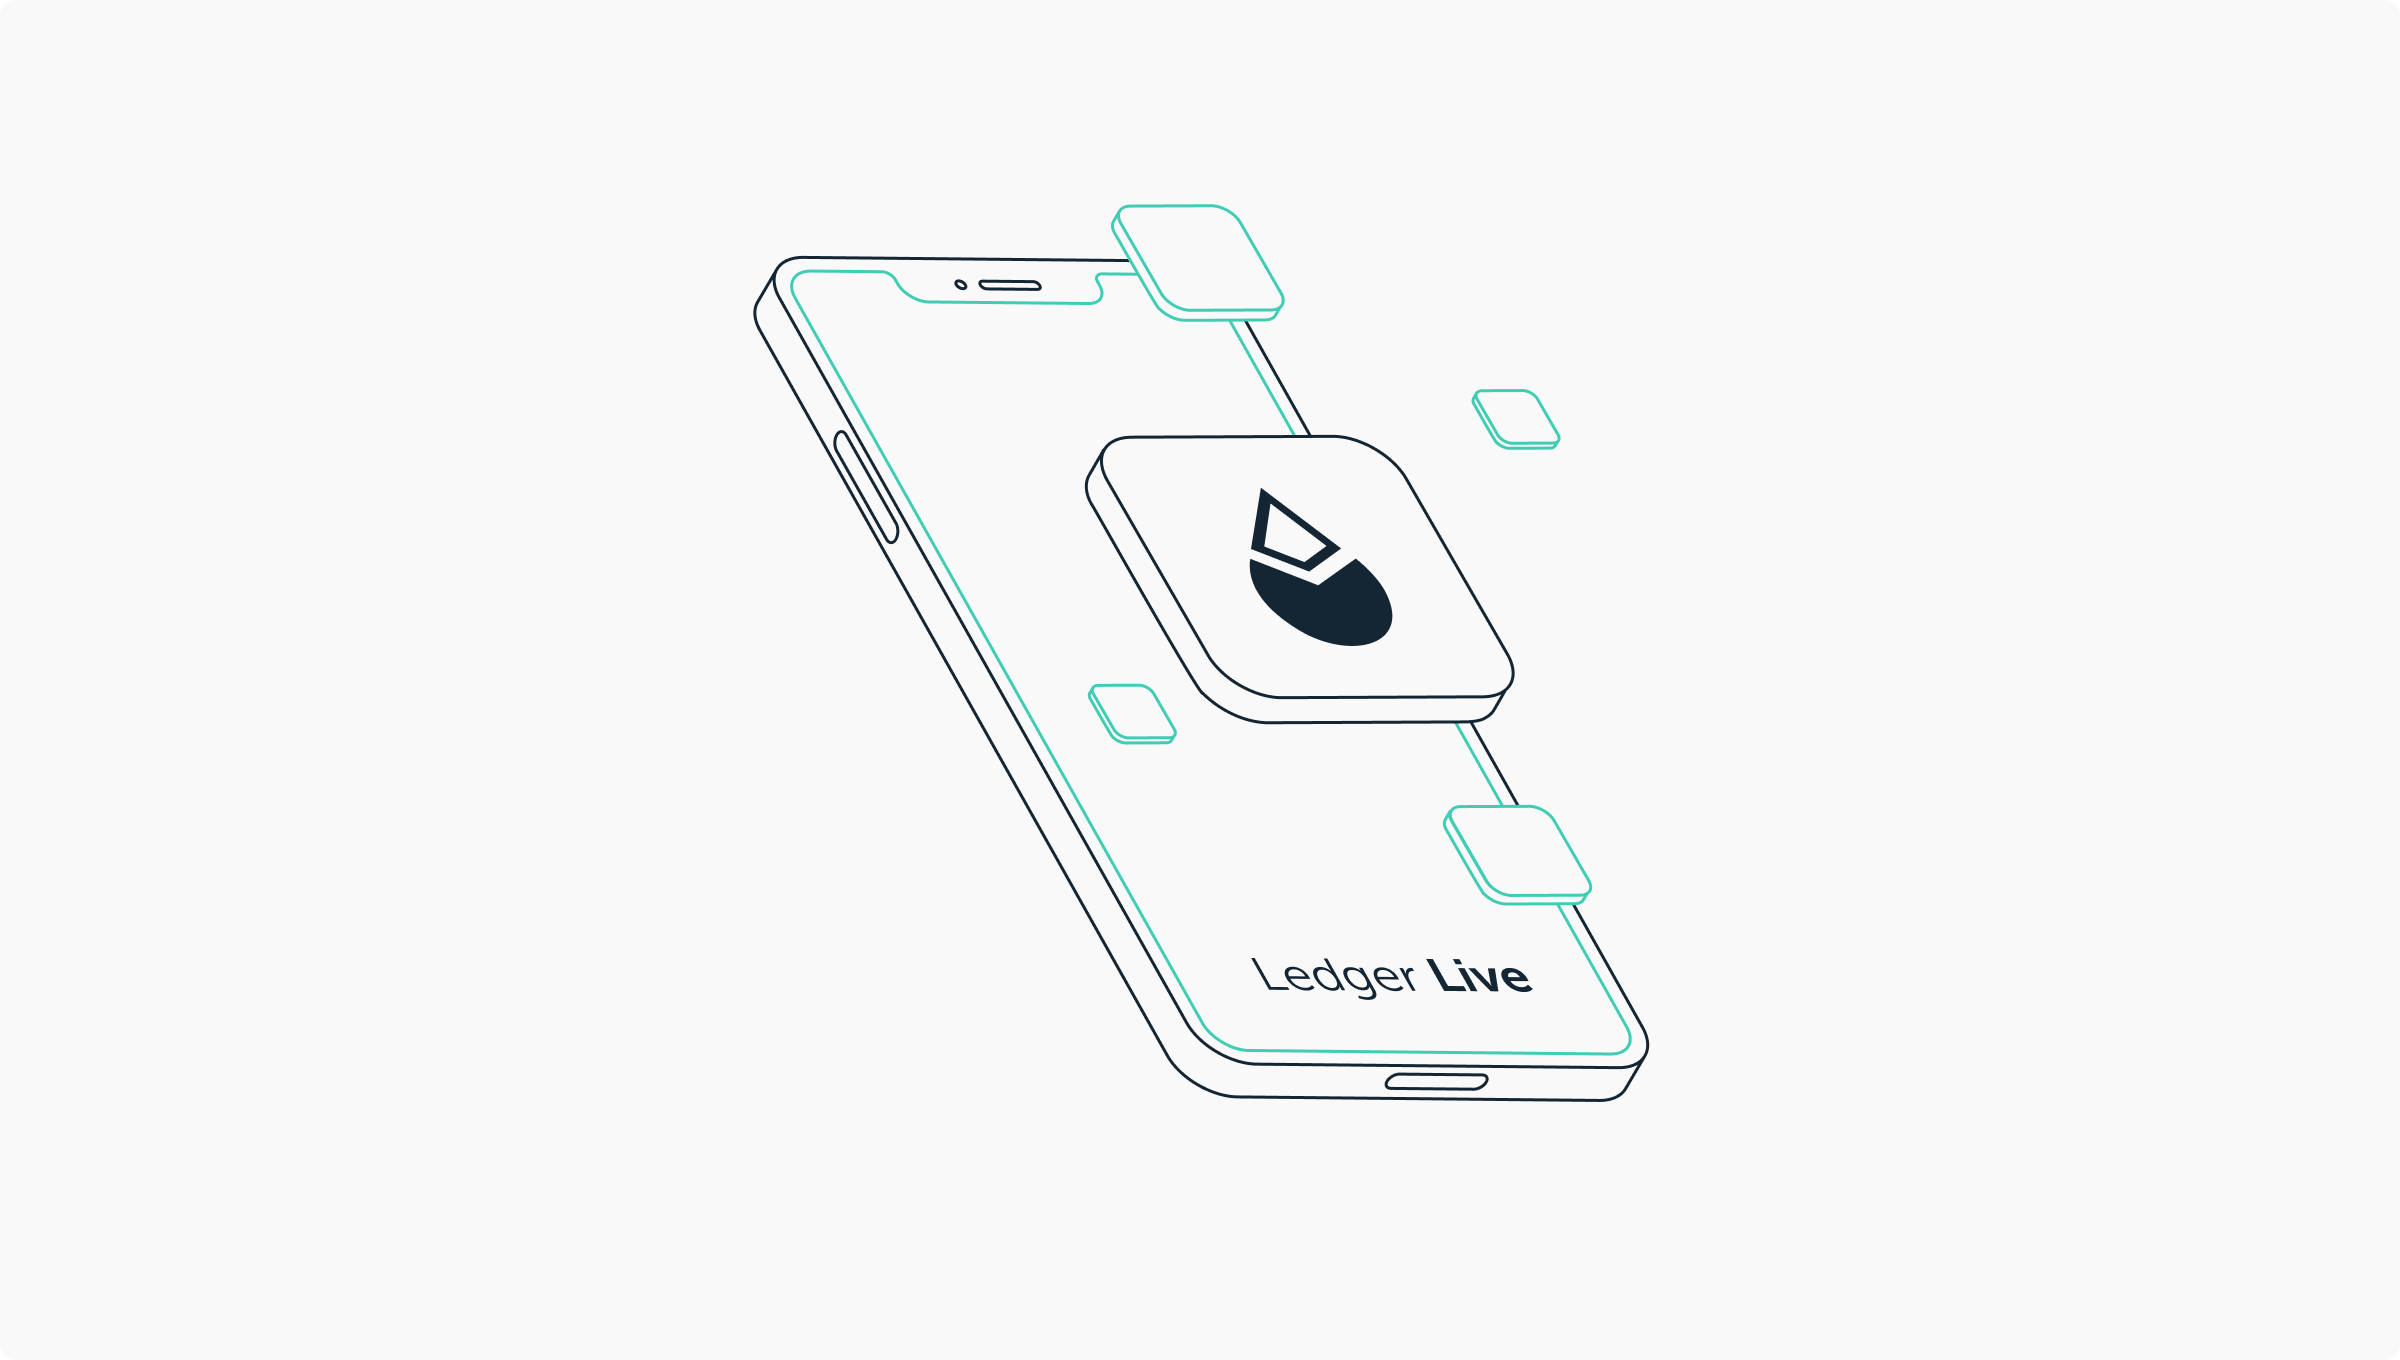 Lido available in Ledger Live: bringing Ethereum staking within your reach.